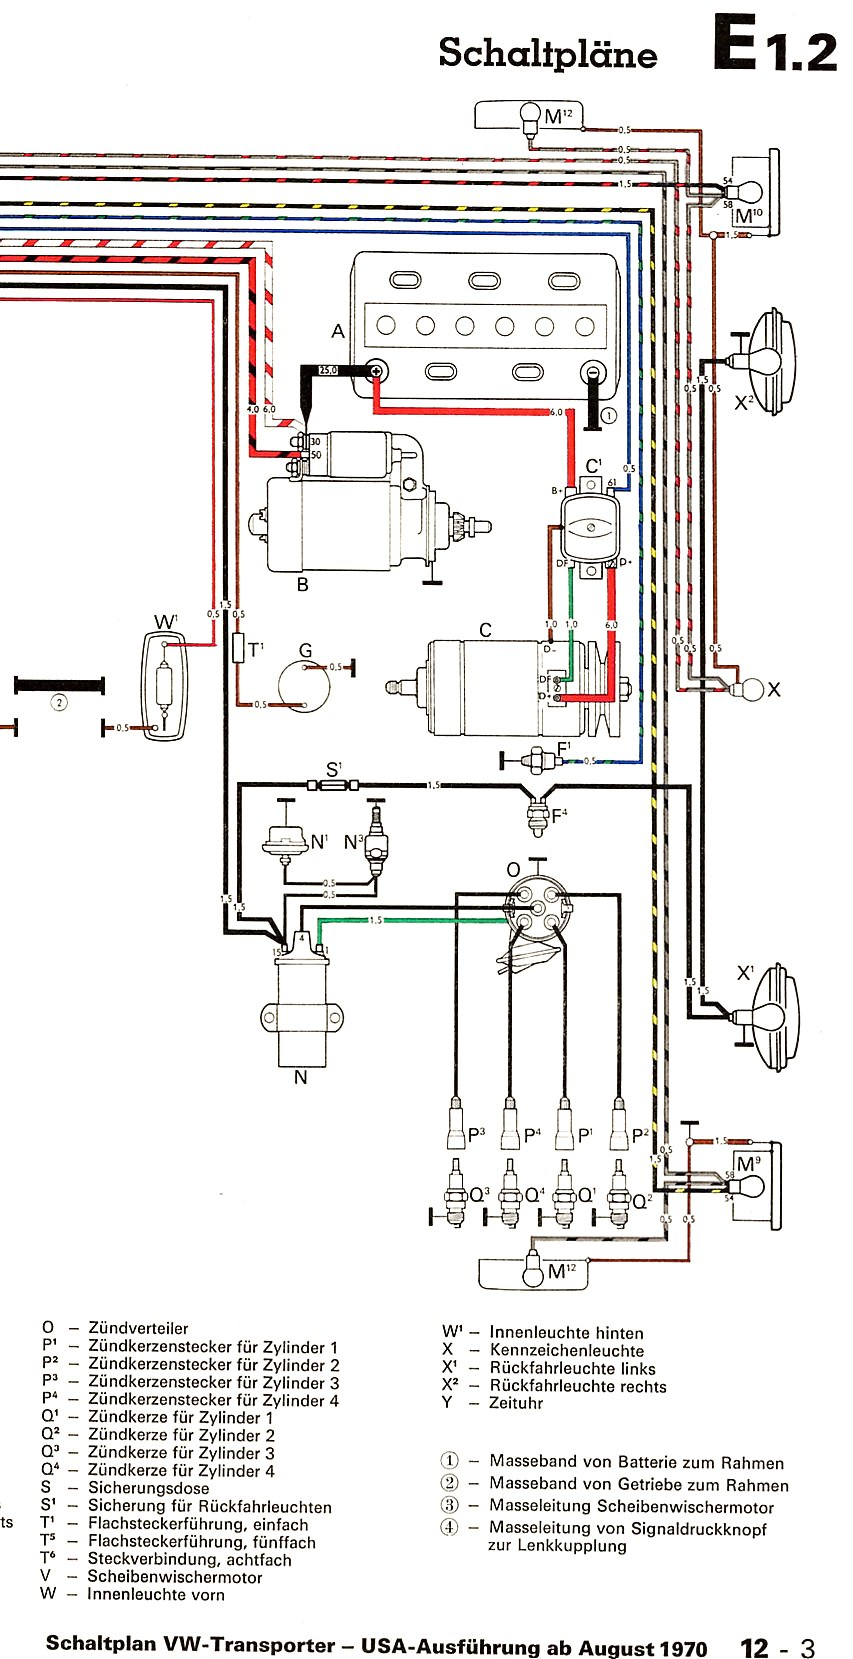 Vw t4 caravelle wiring diagram used vw caravelle eolican vw t4 wiring diagram dolgular com vw t4 wiring diagram dolgular com vw t4 caravelle wiring diagram at vw t4 caravelle wiring swarovskicordoba Choice Image